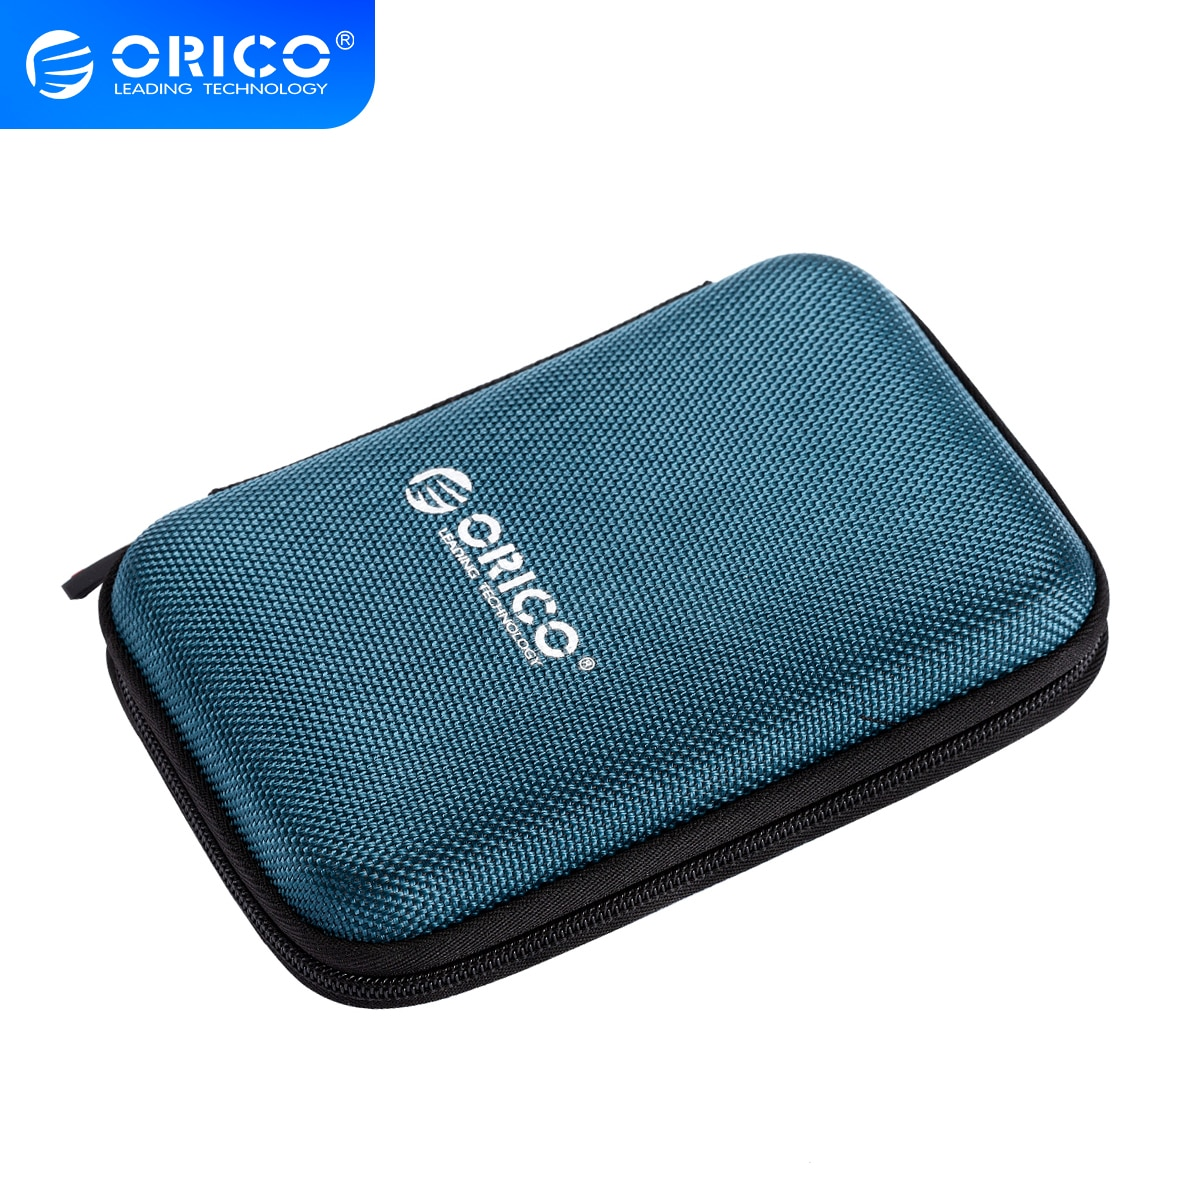 ORICO 2.5 inch Portable External Hard Drive Protection Bag Dual Buffer Layer HDD Protector Case PHD